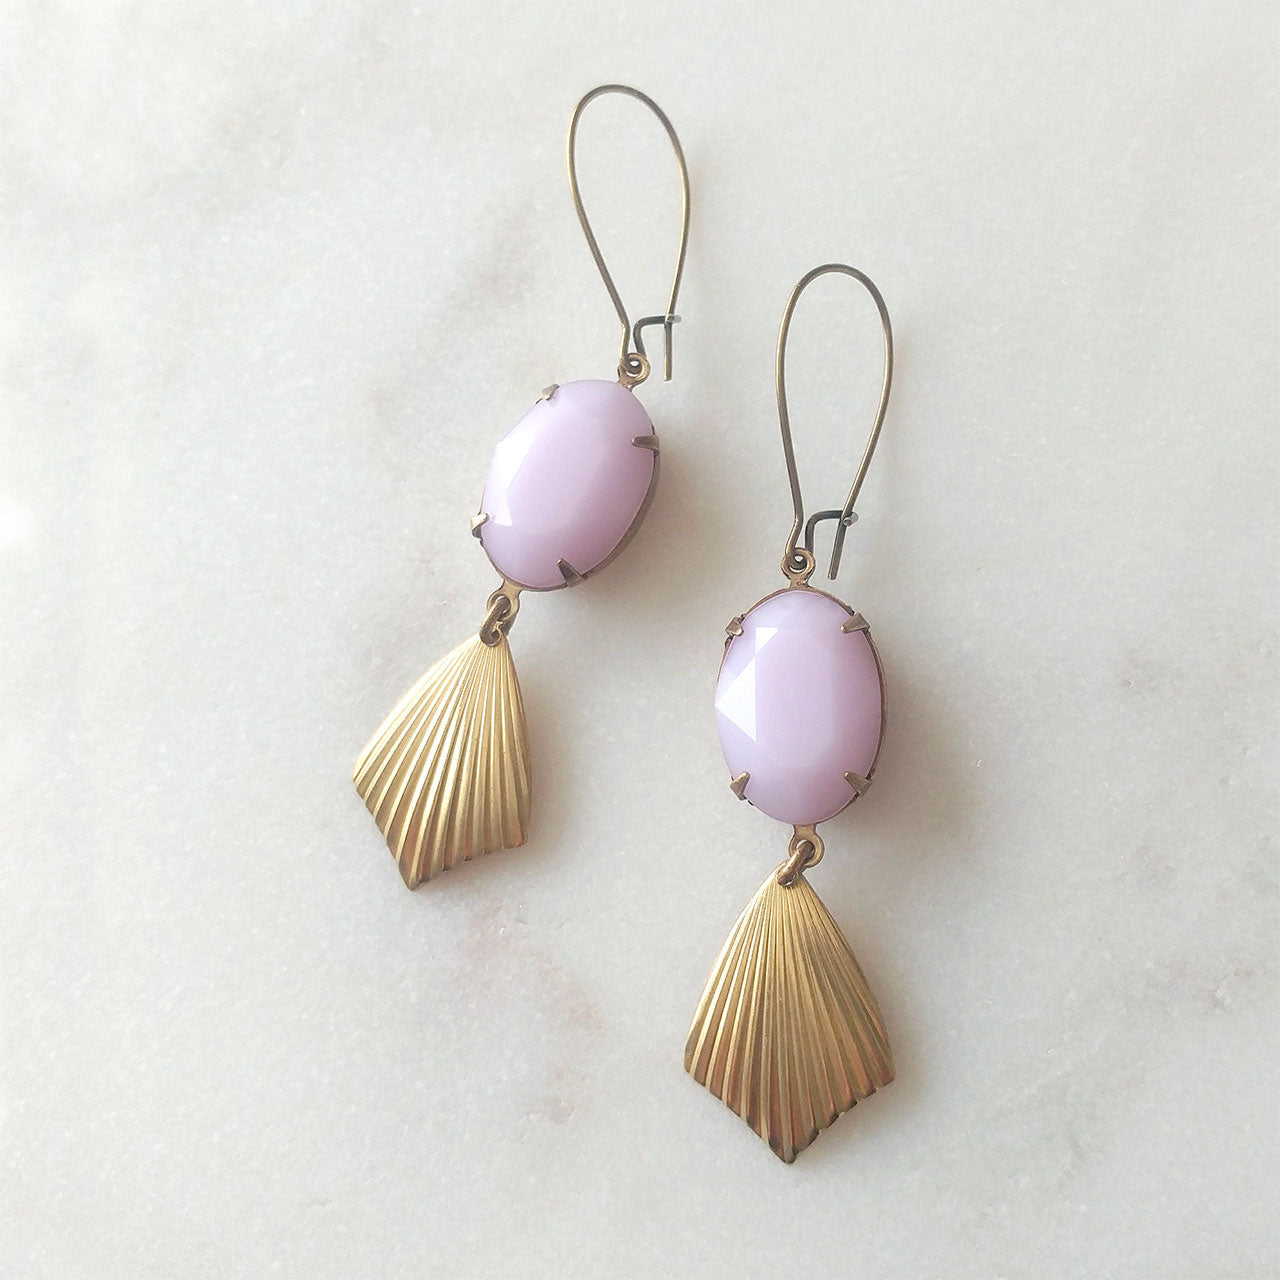 earrings rose alabaster brass drops